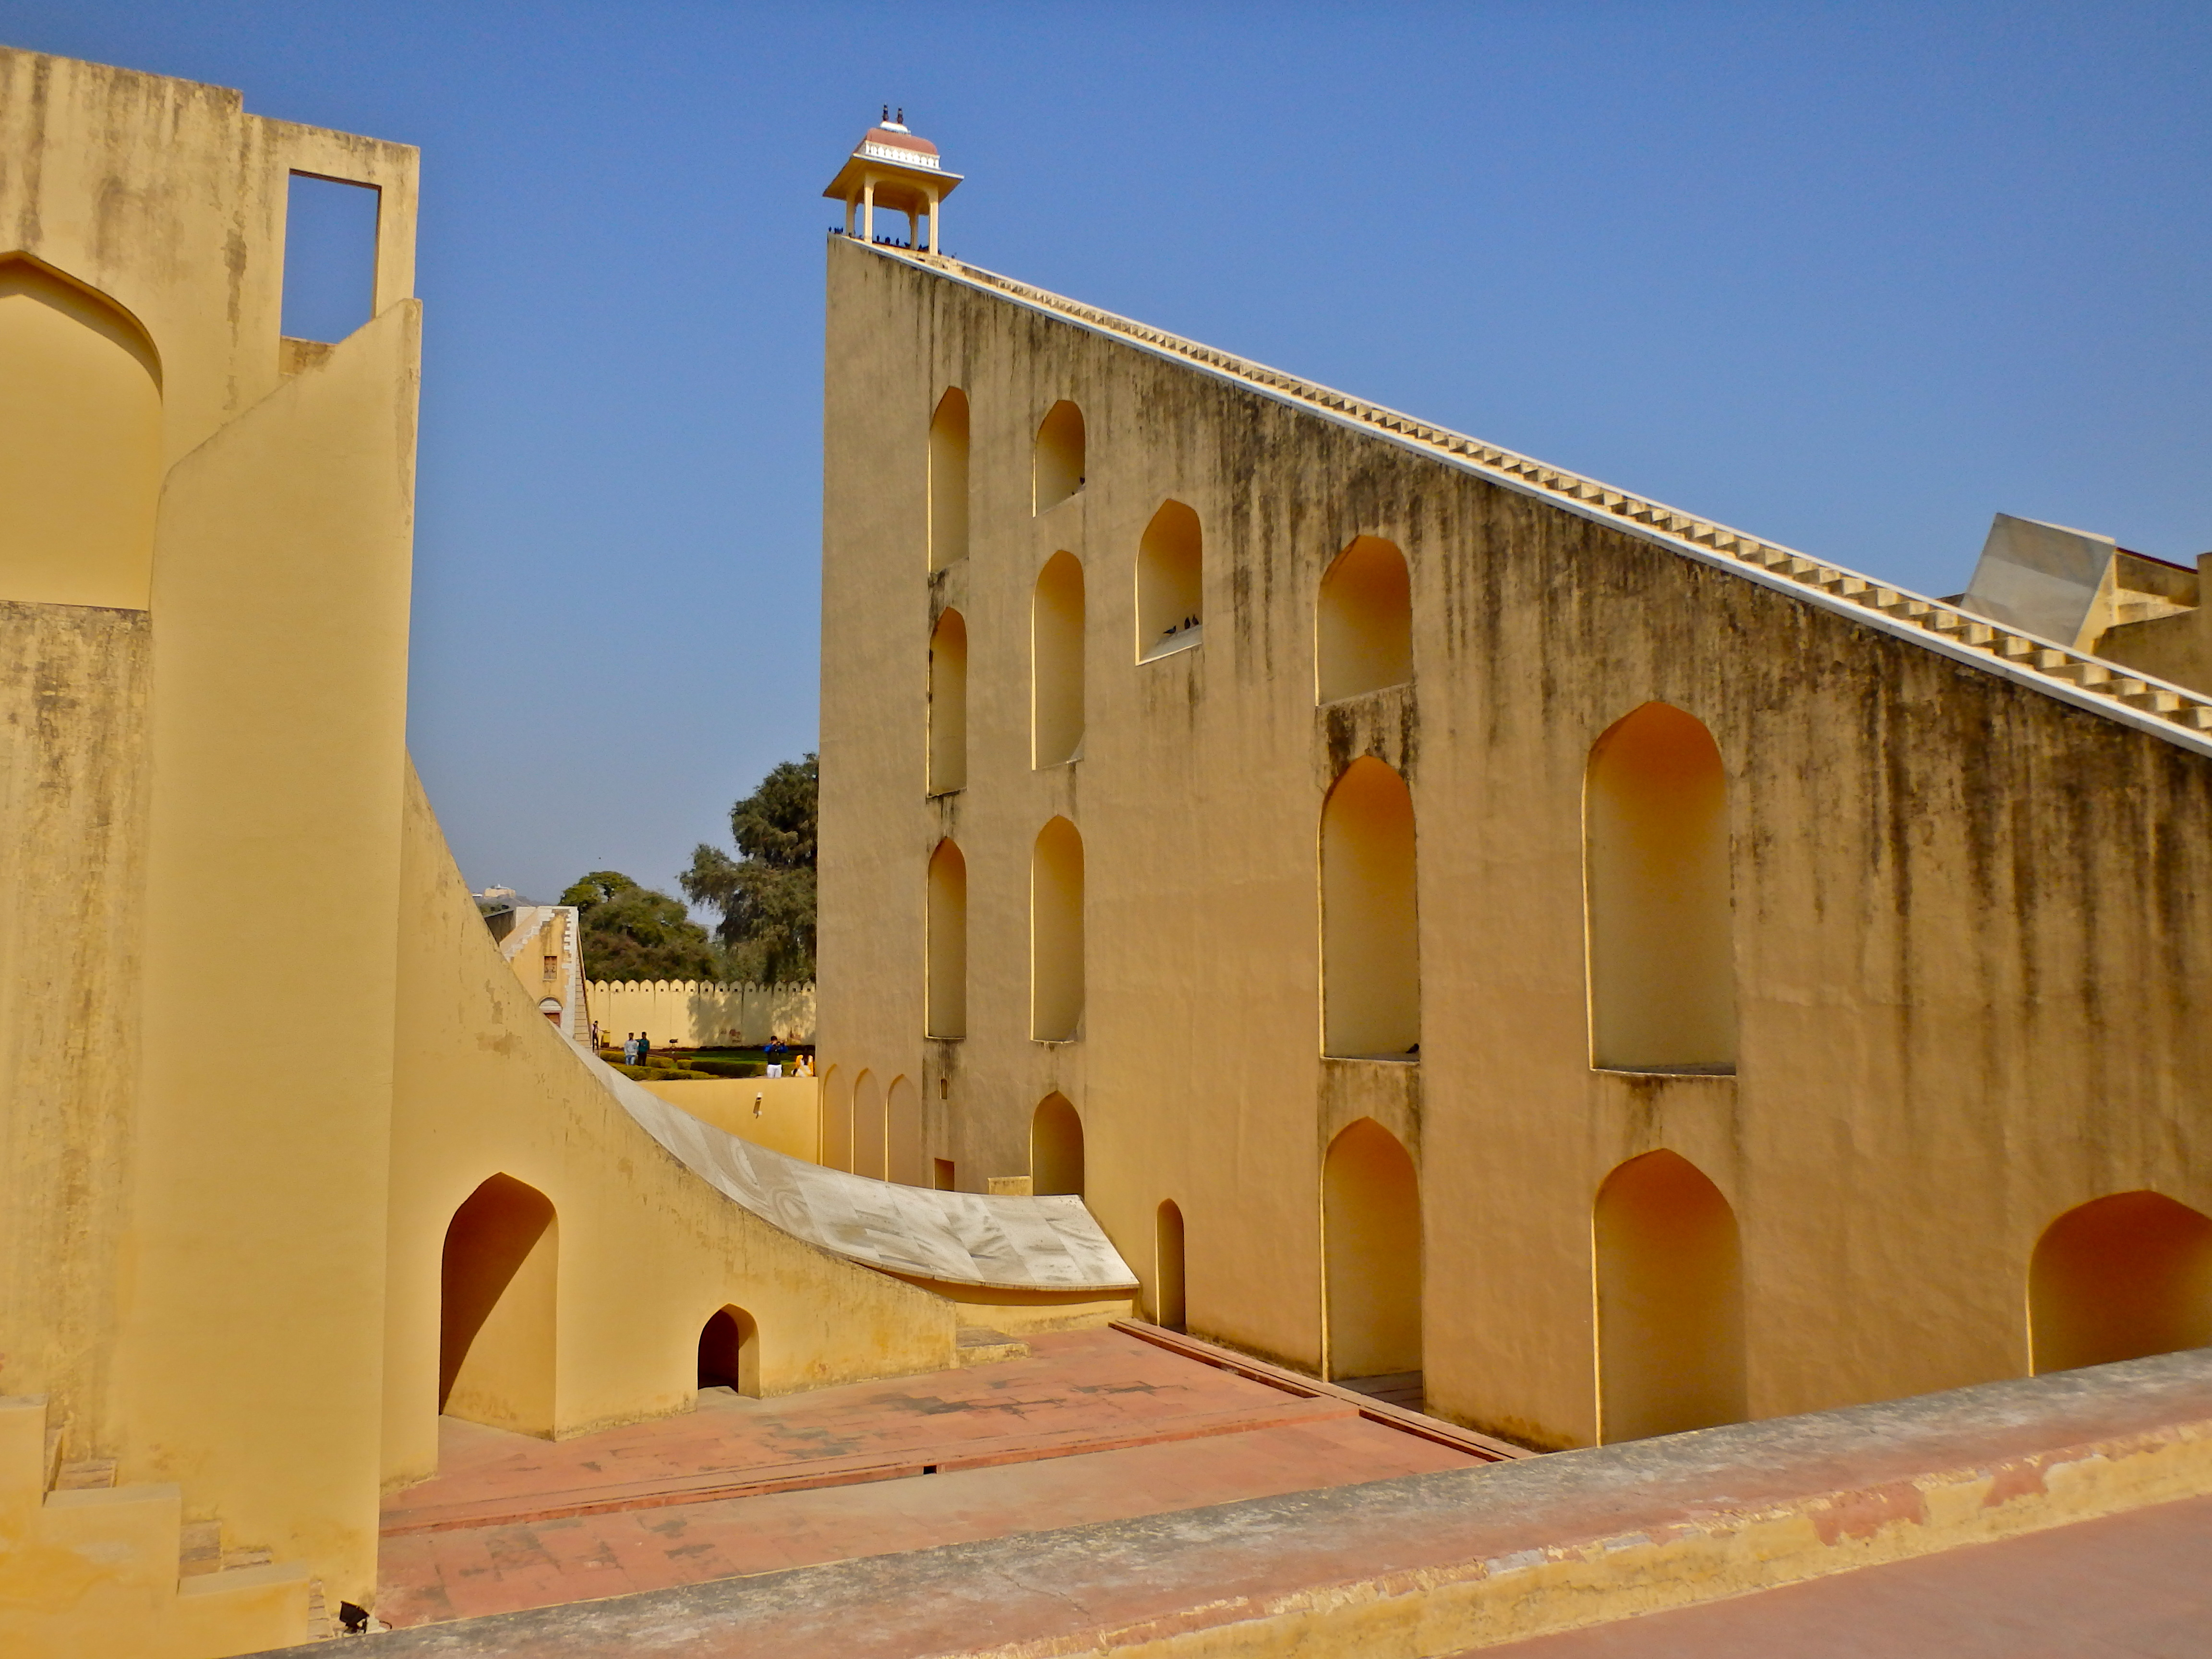 Jantar Mantar in Jaipur India interesting places to visit in india quirky attractions in india